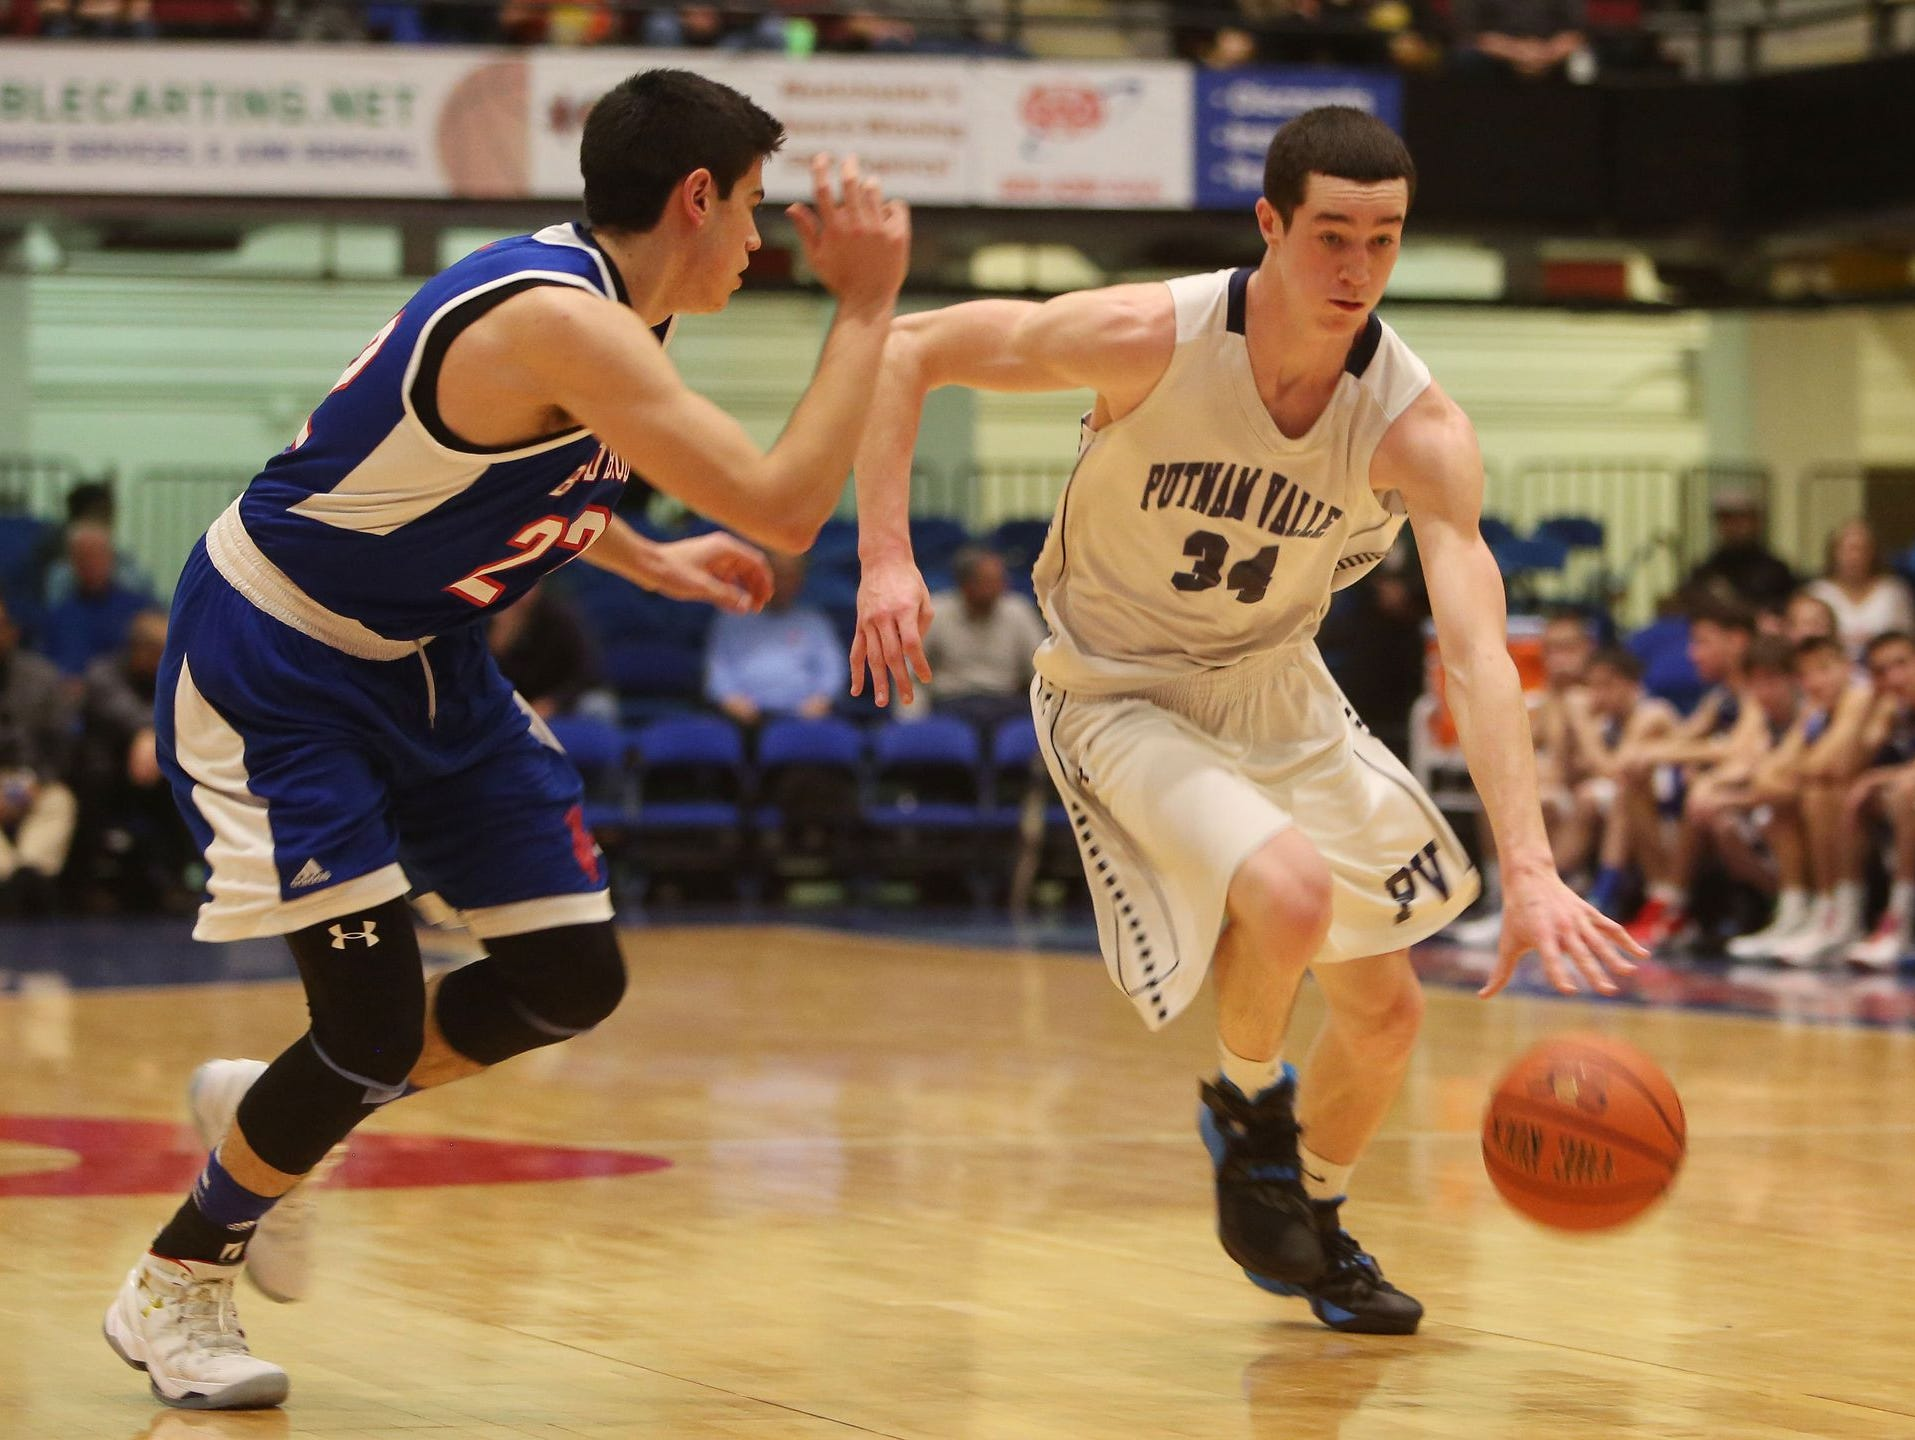 Putnam Valley's Joe Spinola (34) drives to the basket in front of Blind Brook's Austin Levitt (22) during the boys Class B semifinal at the Westchester County Center in White Plains Feb. 24, 2016. Putnam Valley won the game 48-39.